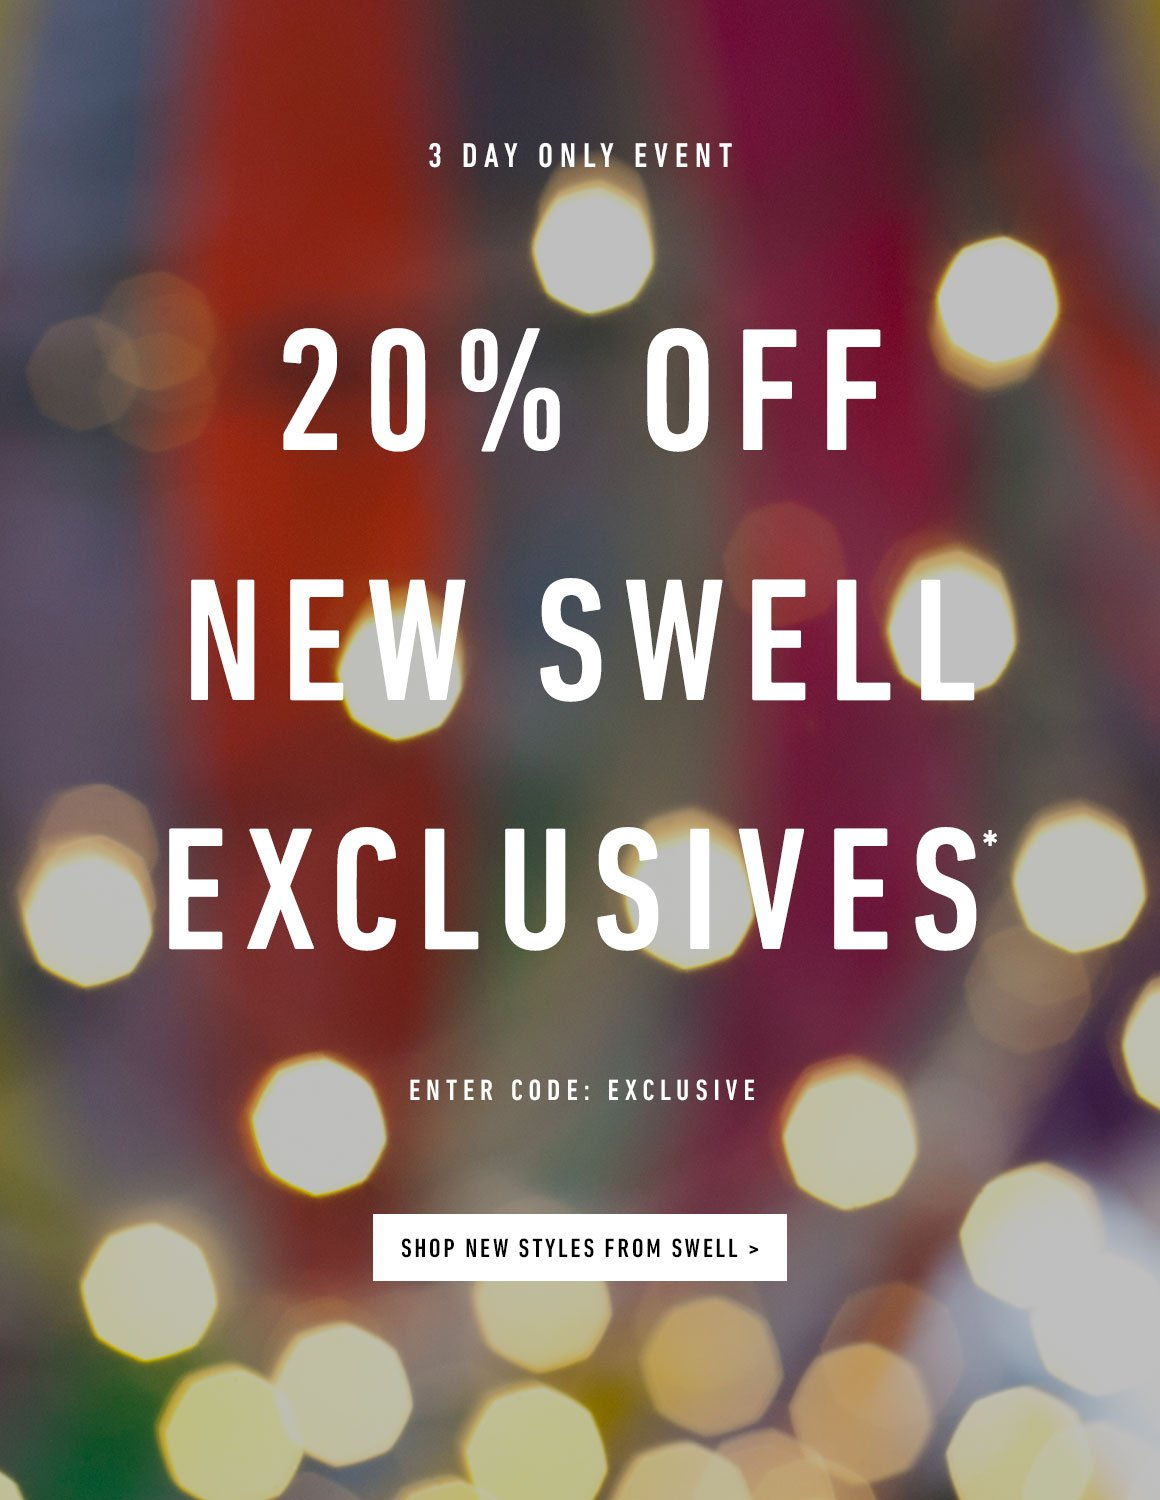 3 Day Event. 20% Off New SWELL Exclusives! Enter Code: EXCLUSIVE